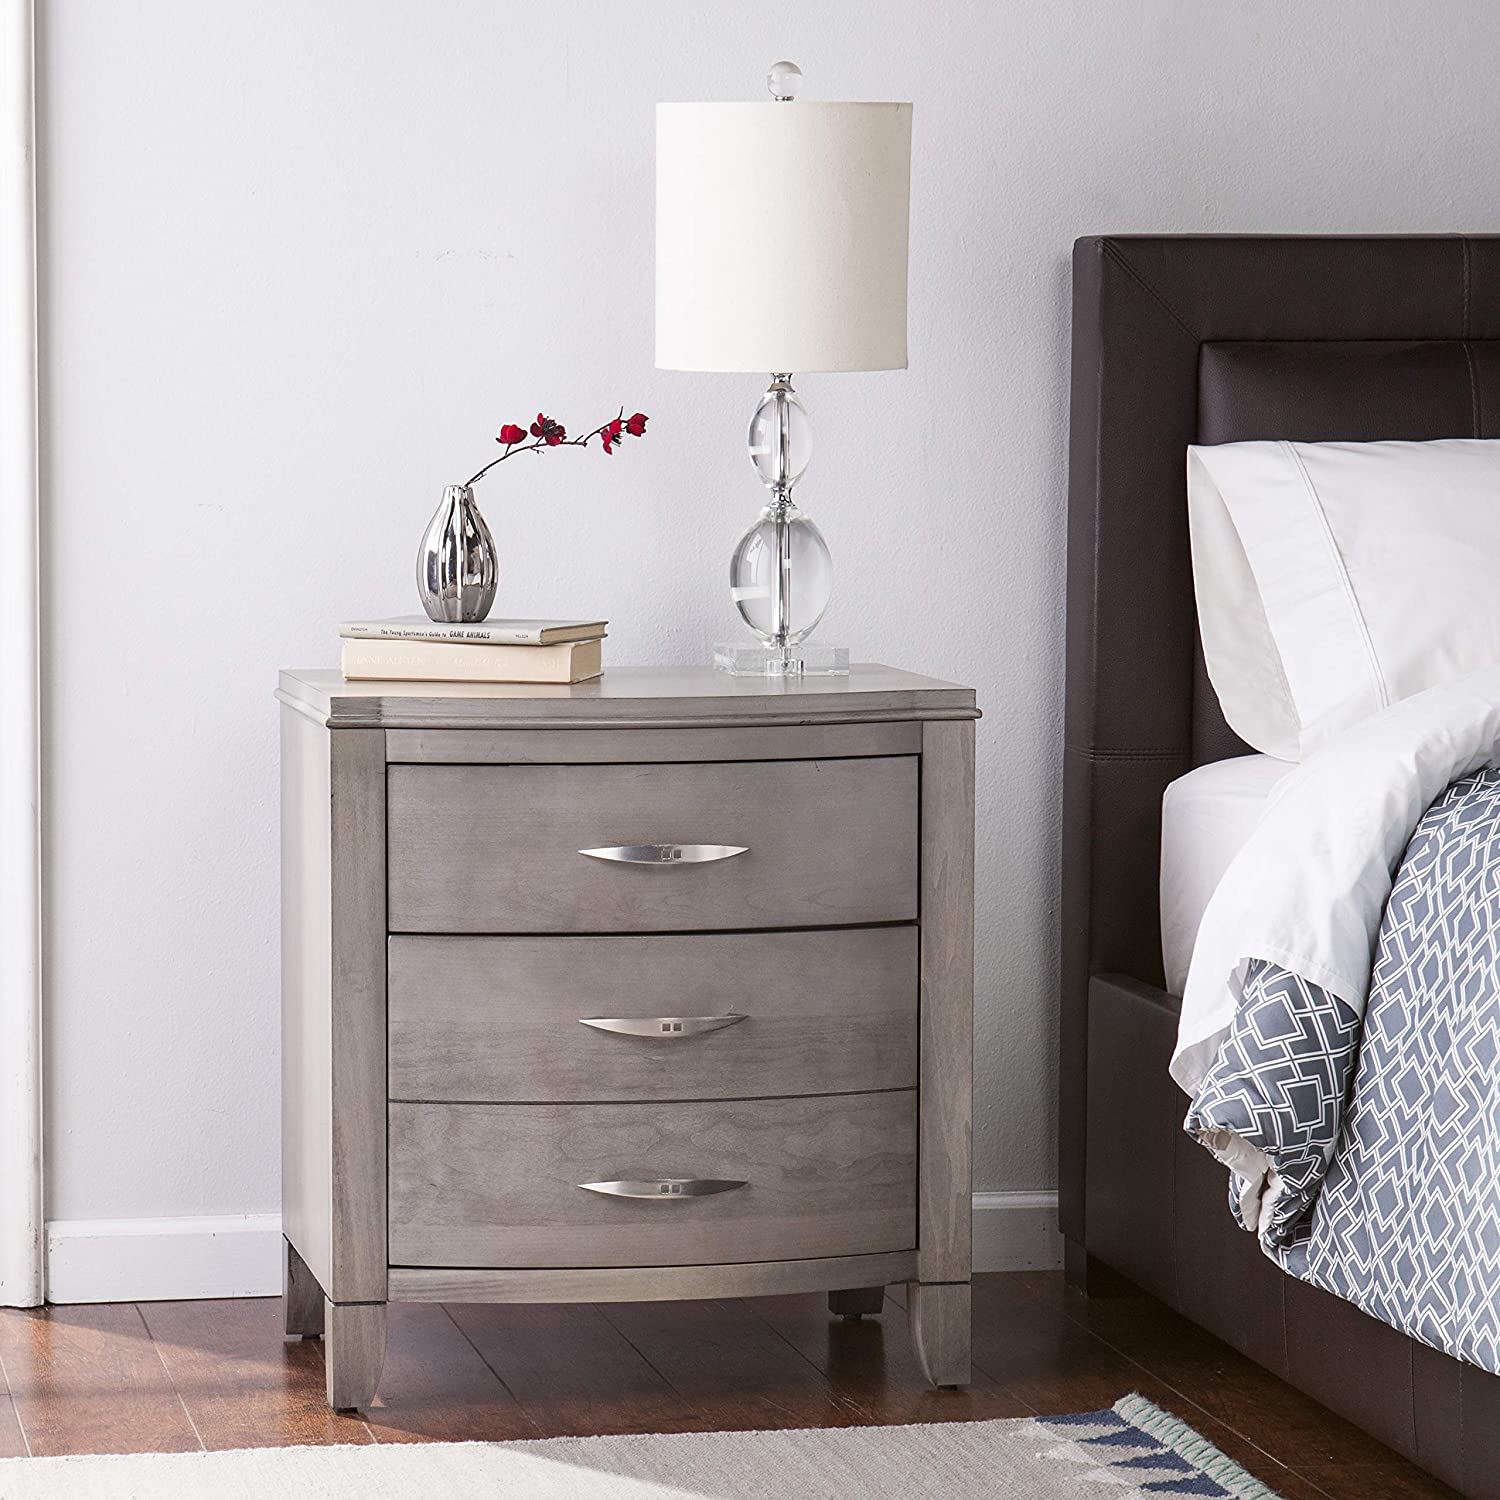 2 drawer nightstand transitional styledriftwood gray finish bedroom furniture soft close drawer hinges brushed silver hardware finish bundle with our